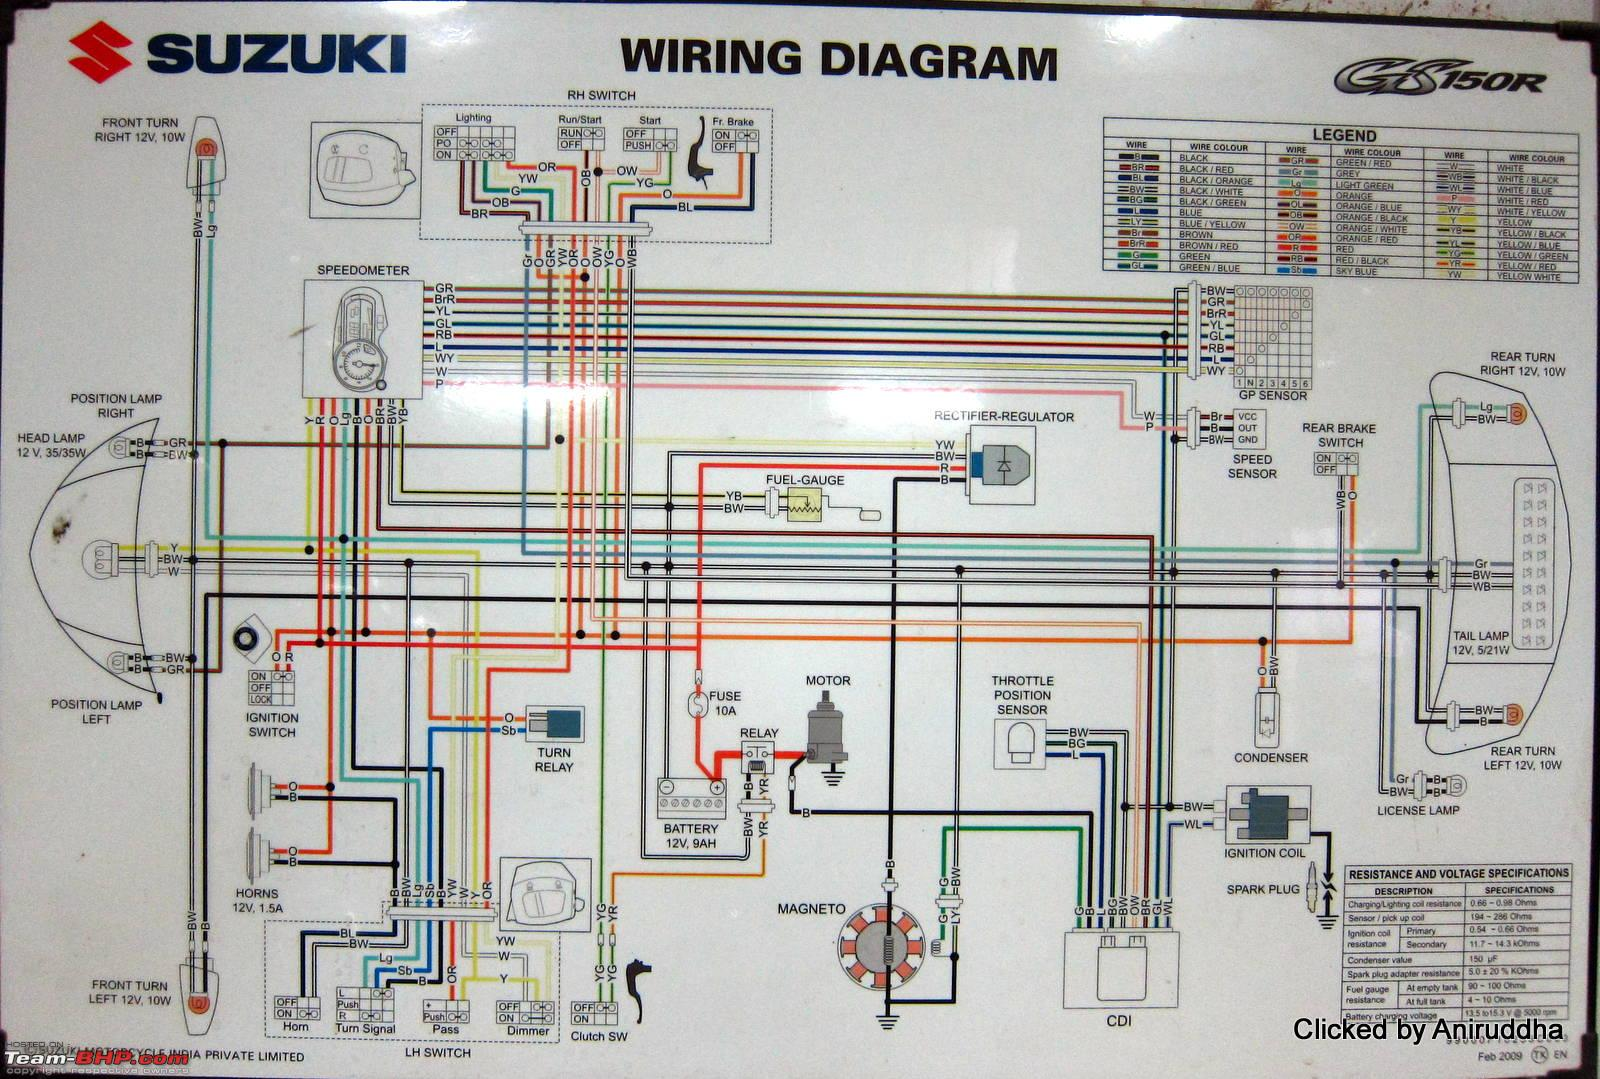 802 Honda Cb Unicorn Wiring Diagram | Wiring ResourcesWiring Resources